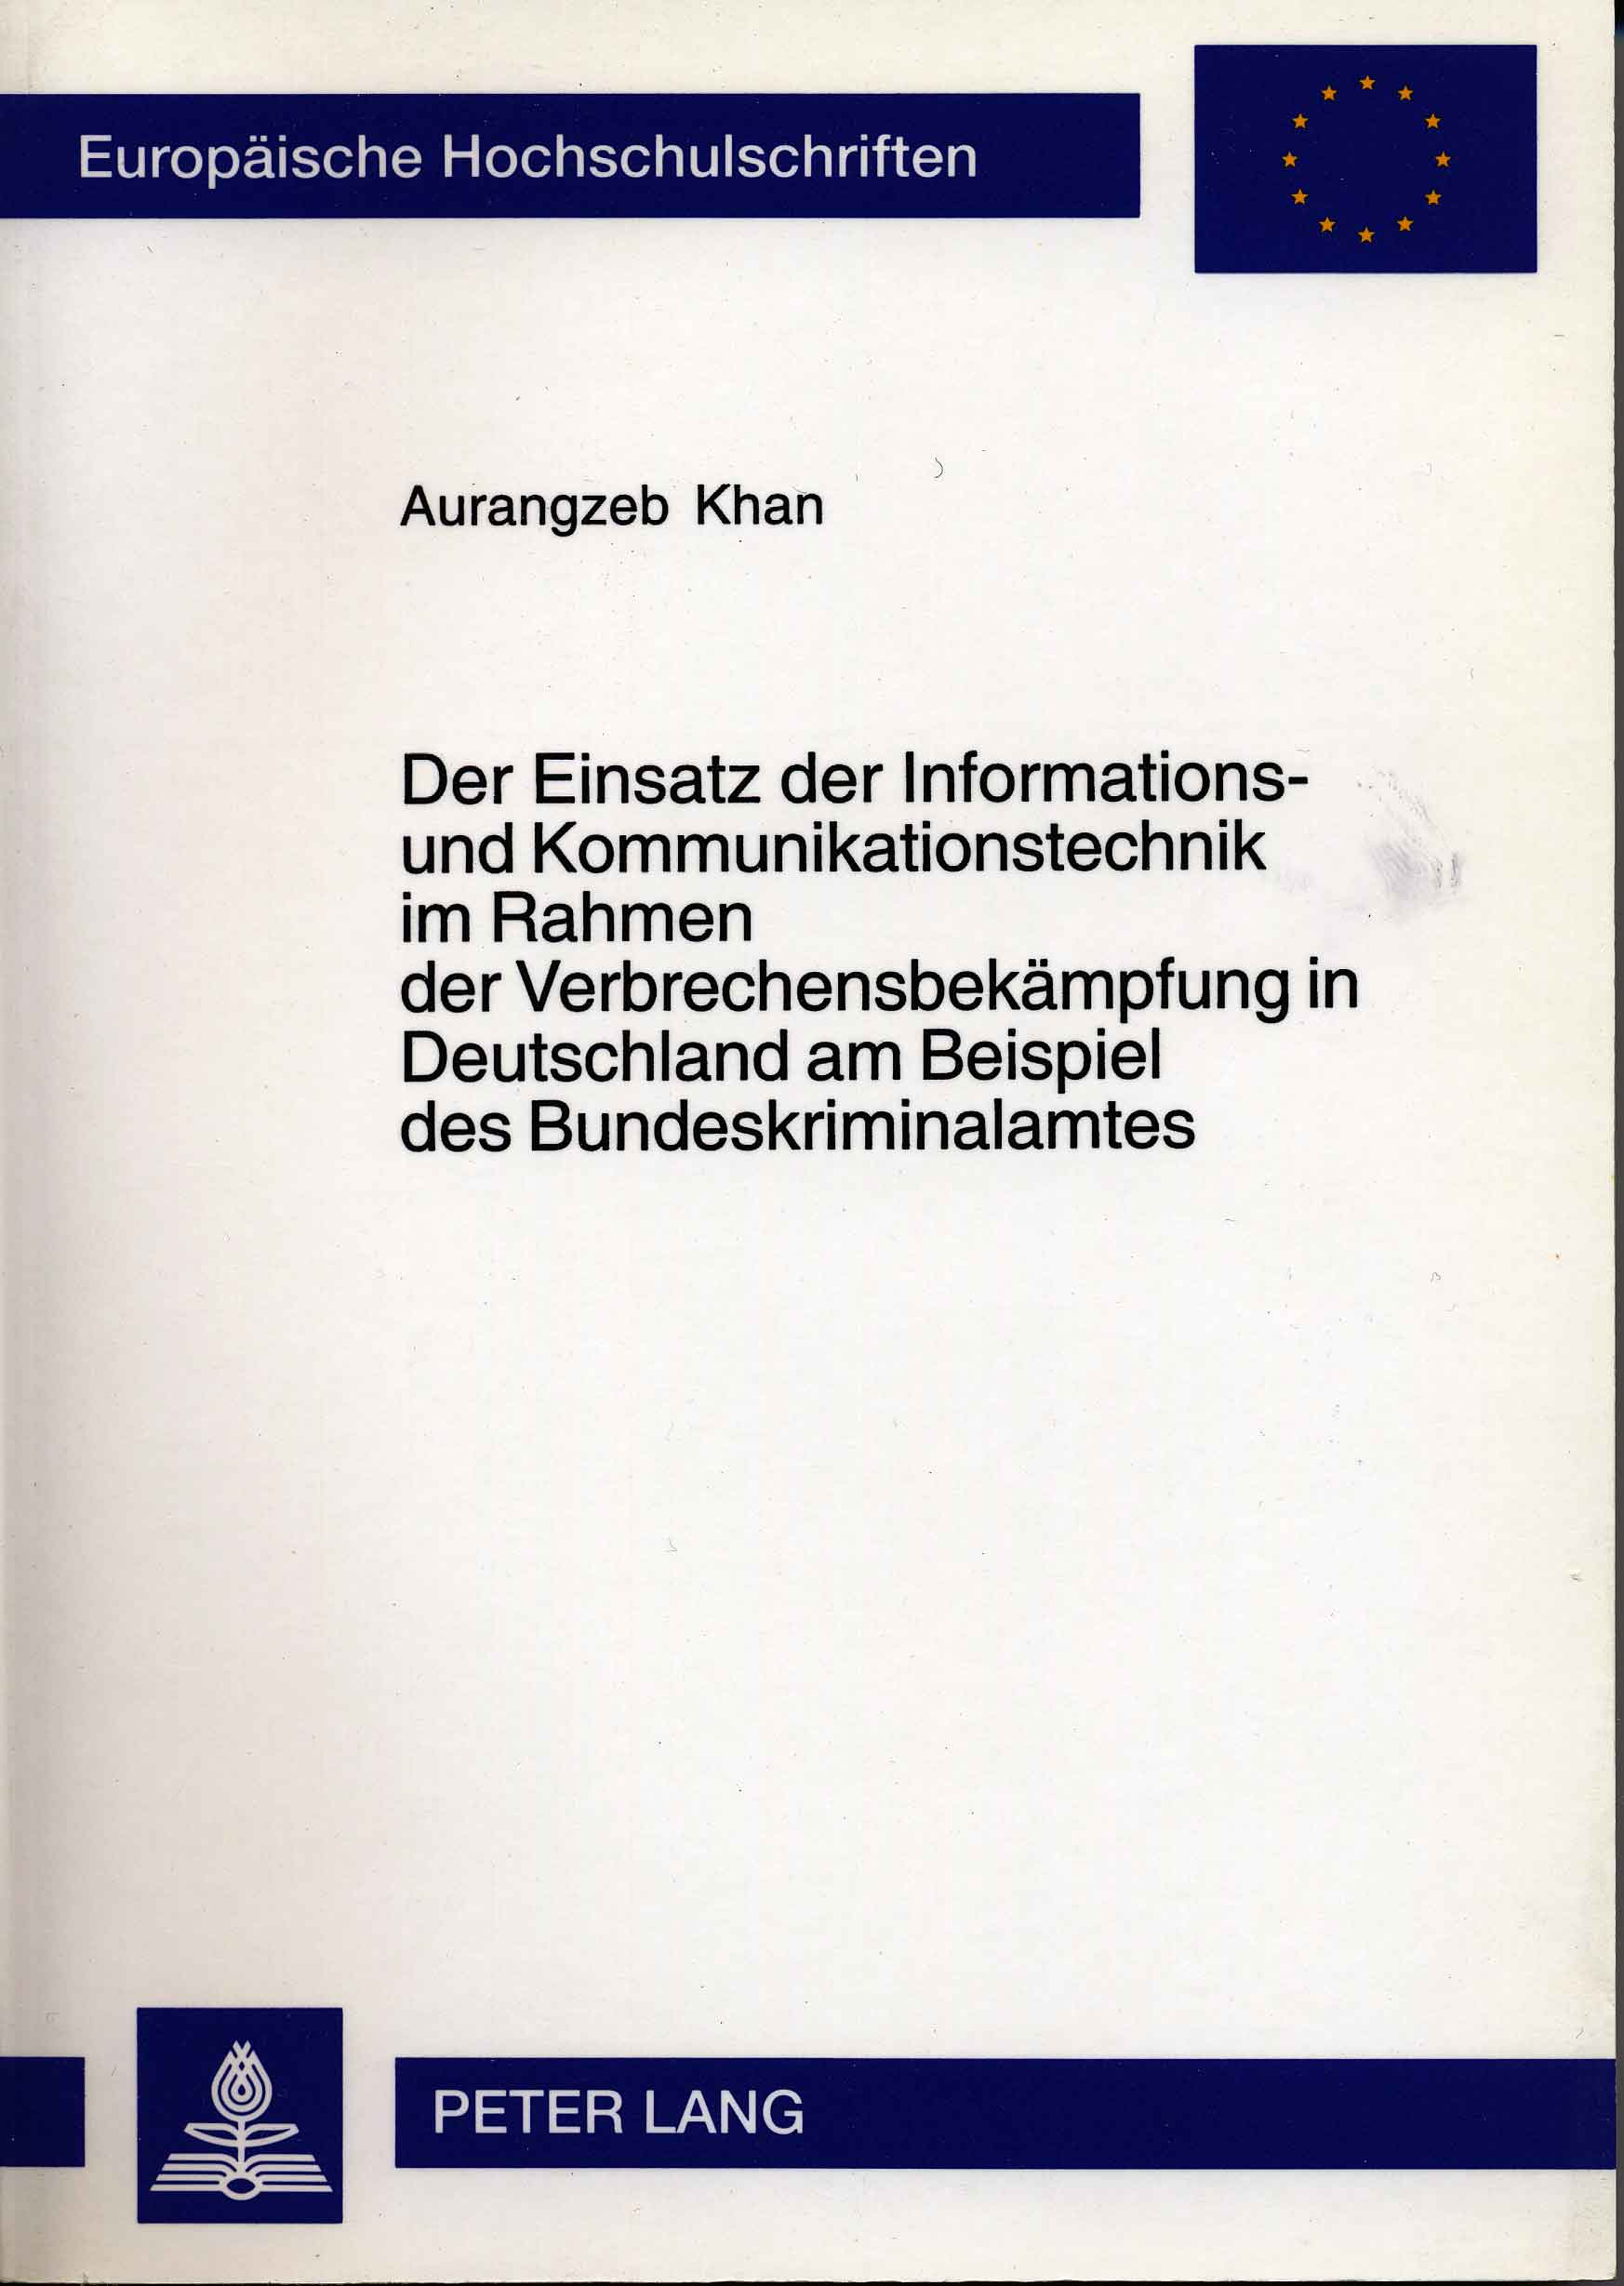 German doctoral thesis